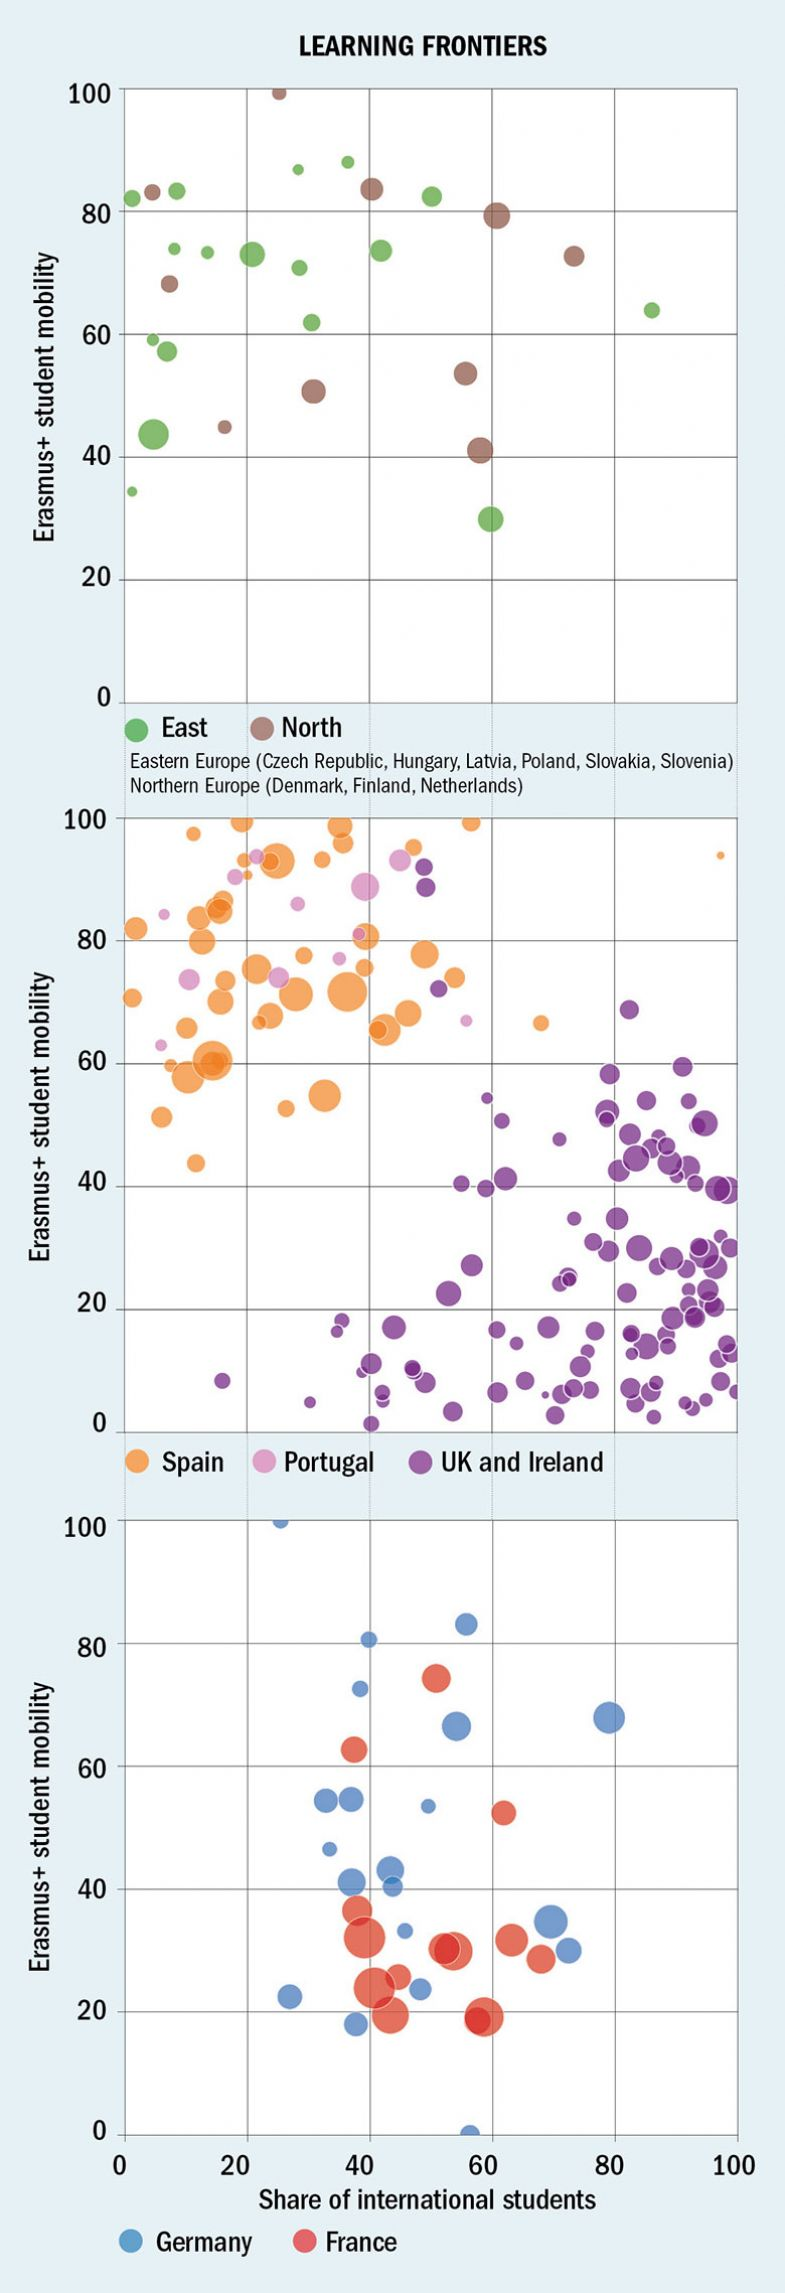 Europe Teaching Rankings 2019 learning frontiers charts